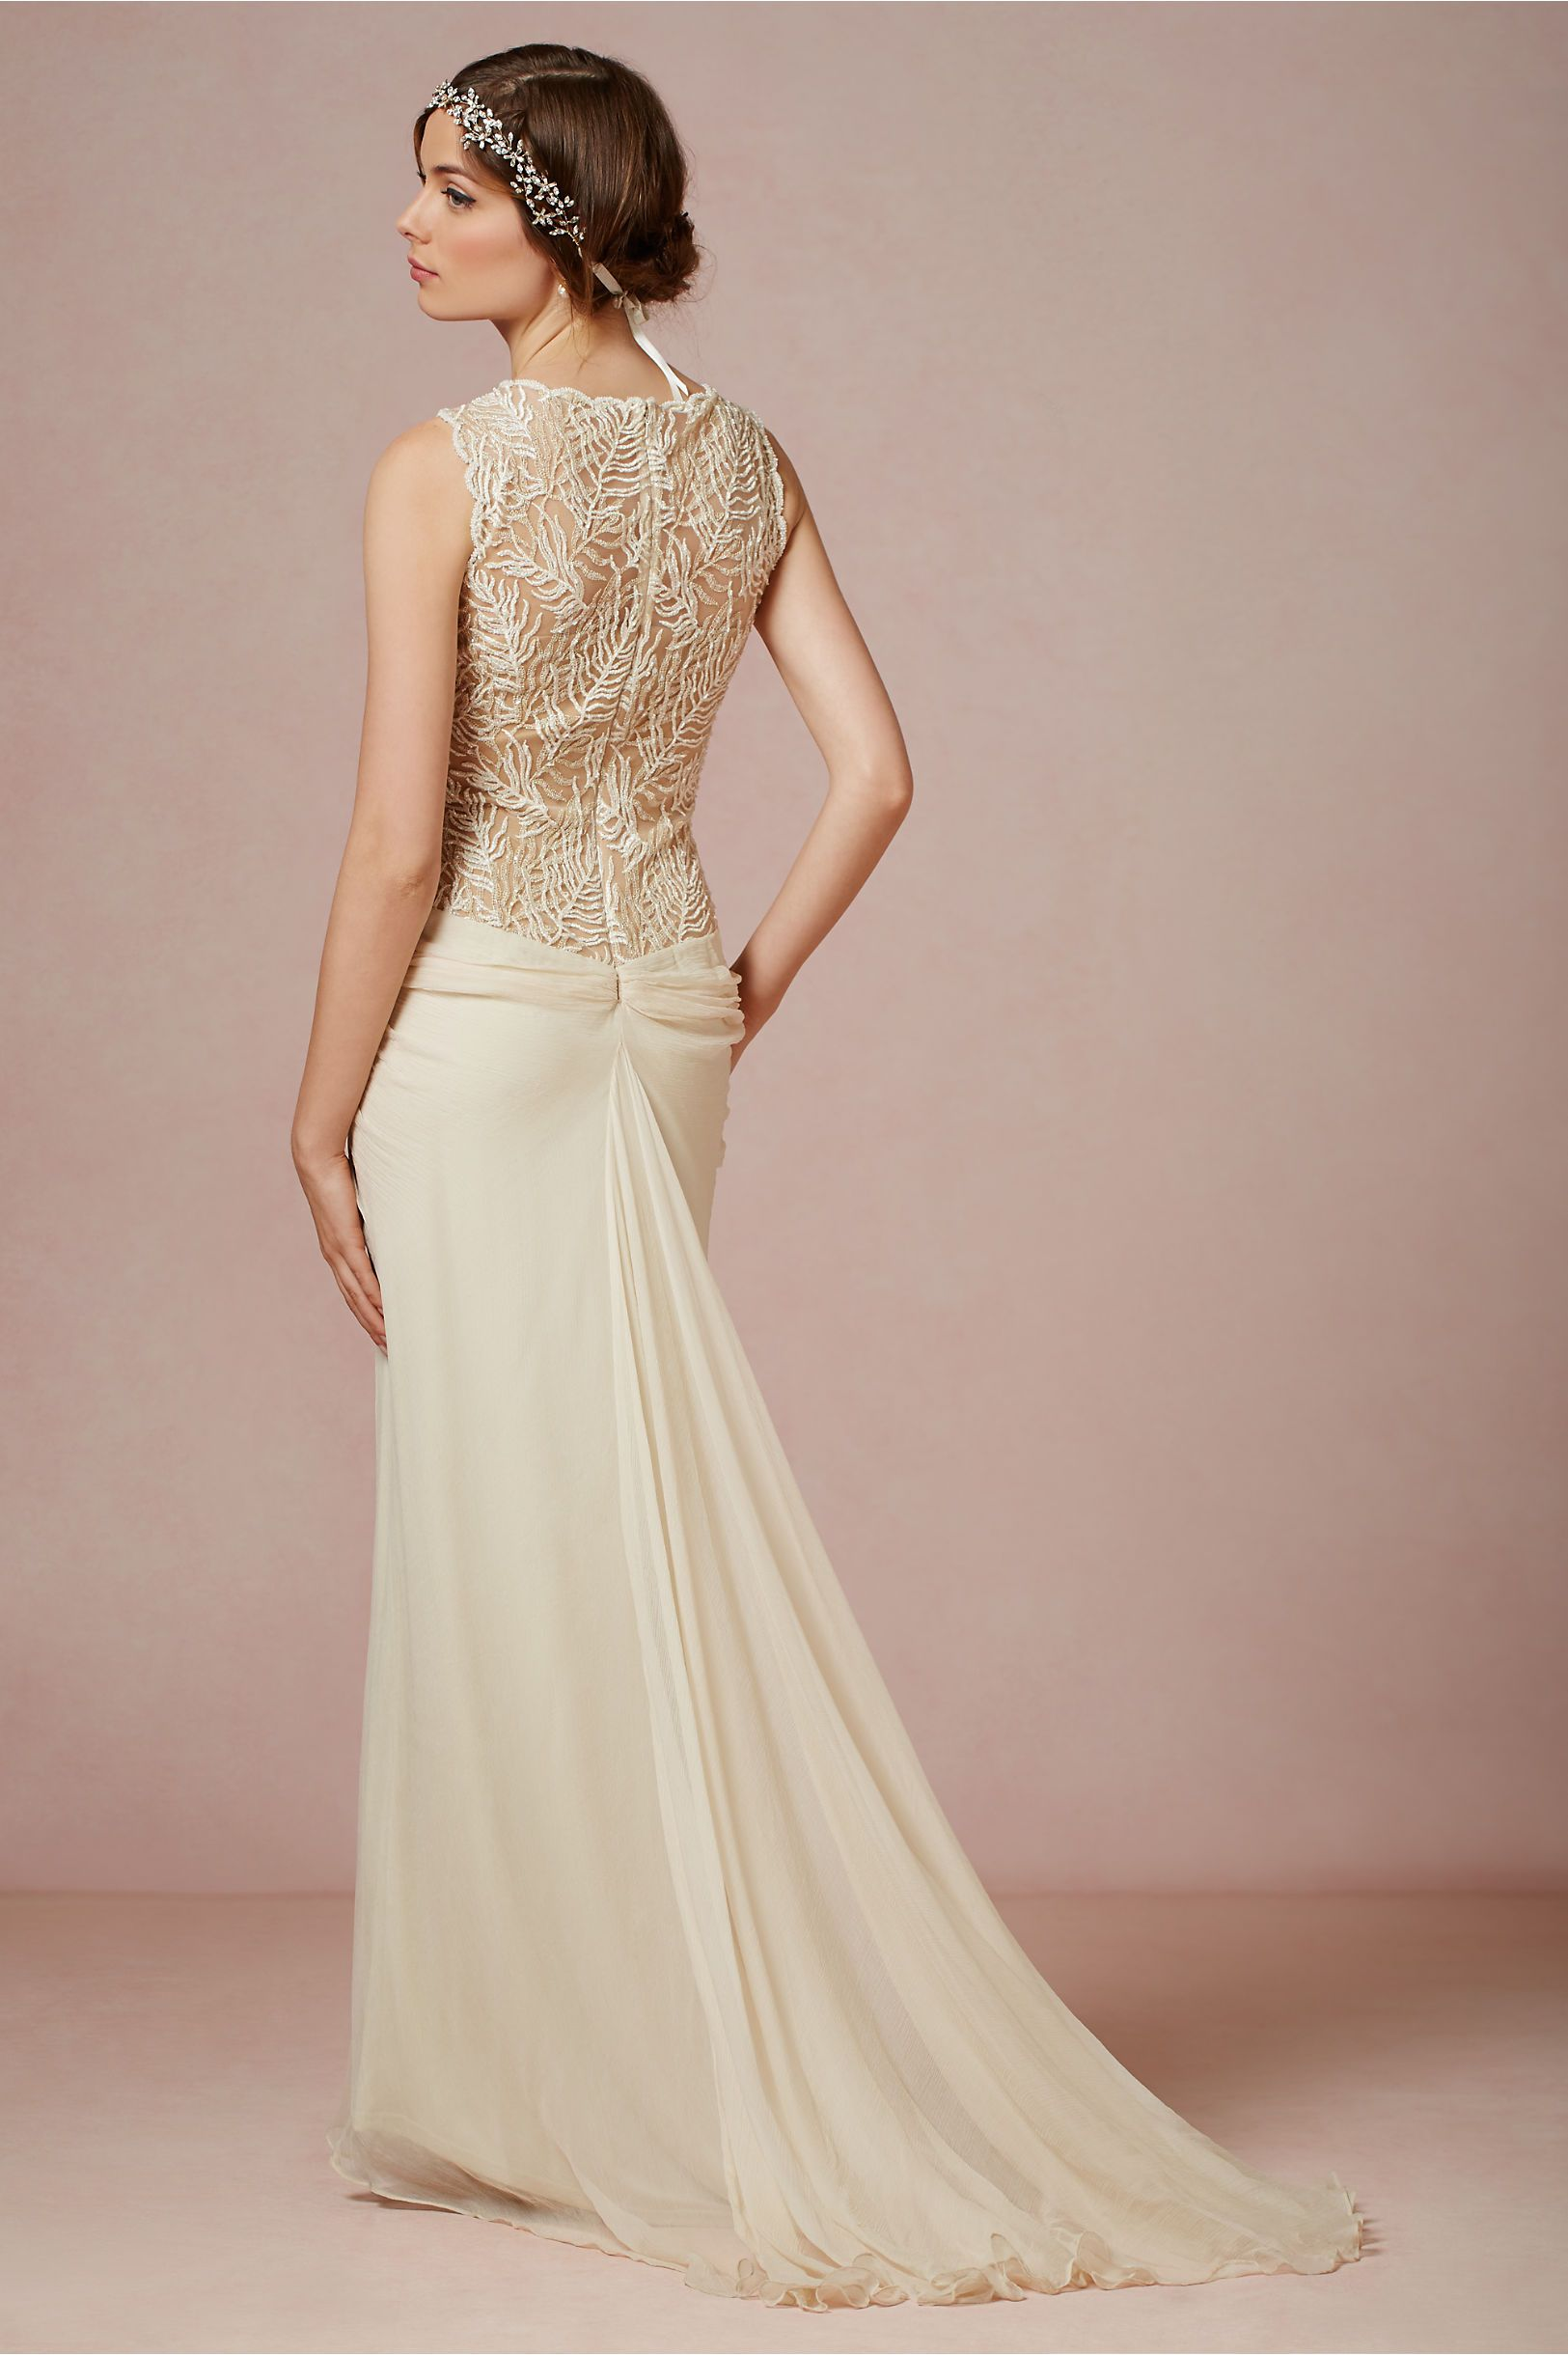 Cypress gown by tadashi shoji hard to think you can get something